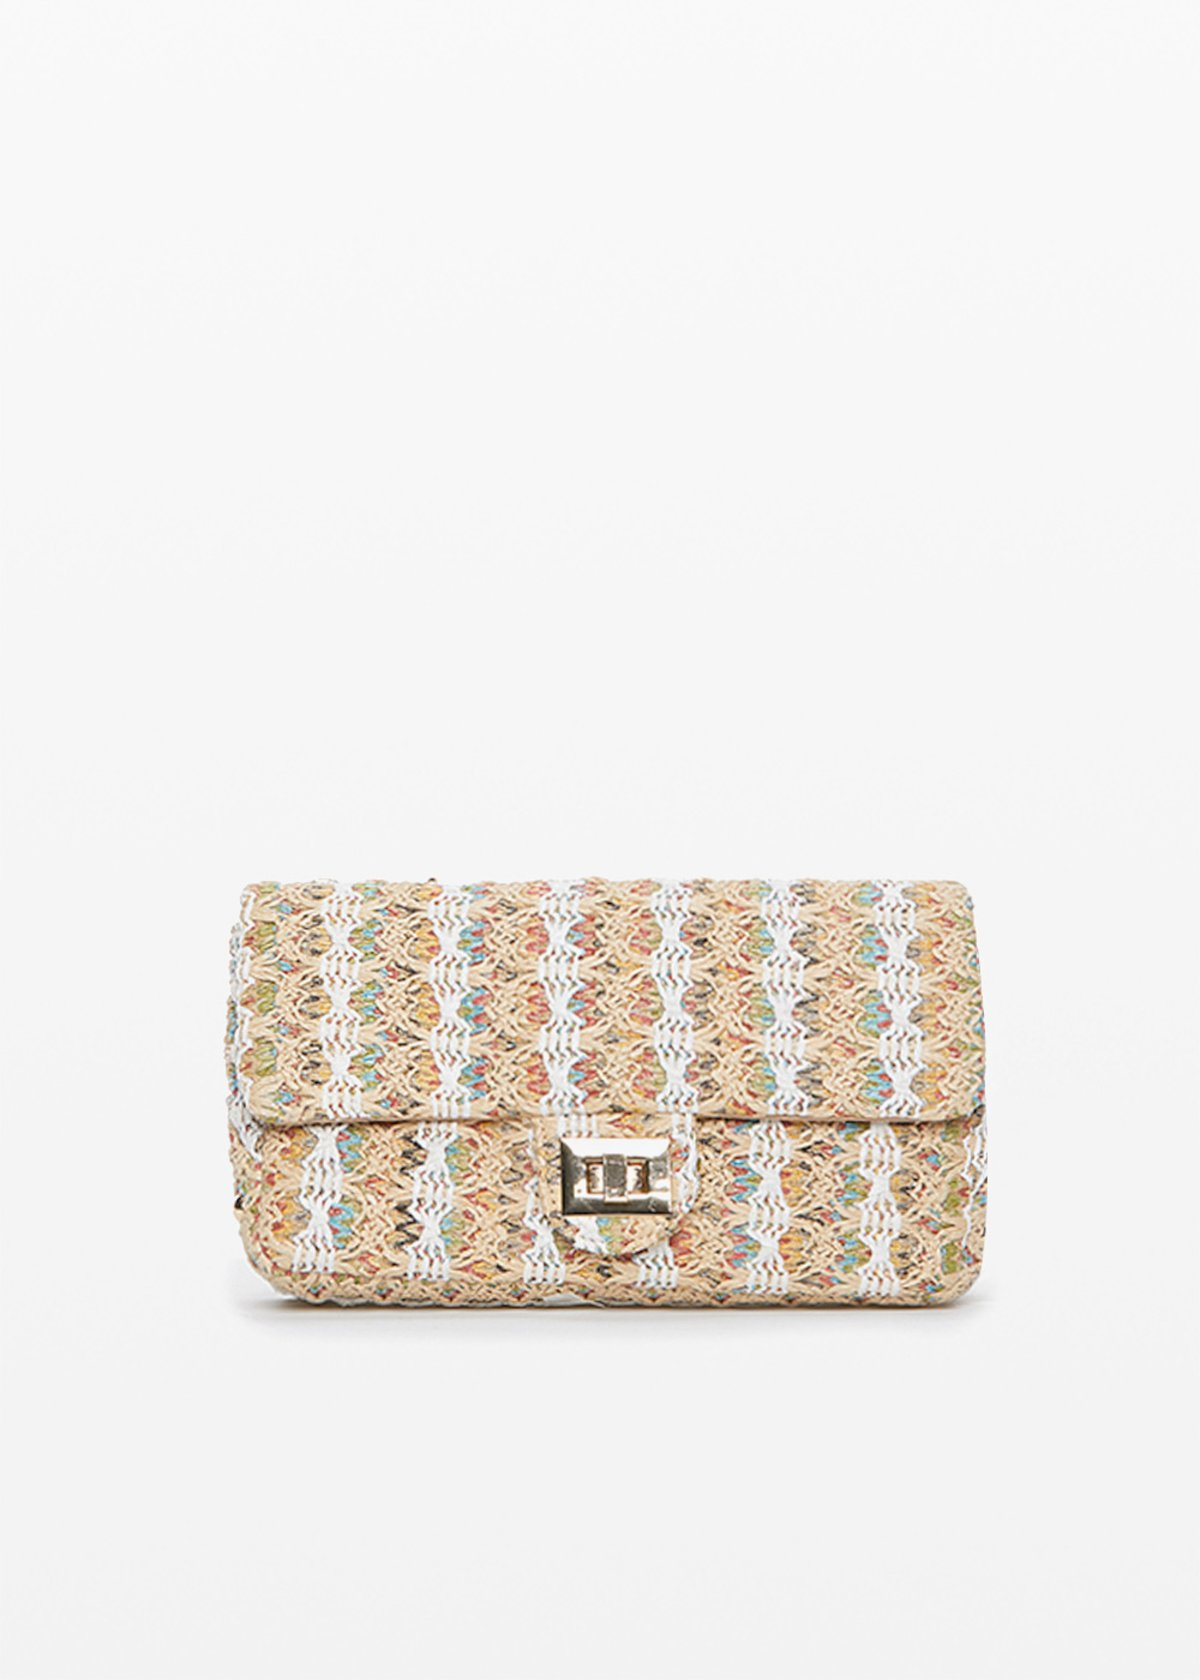 Boss braided fabric multicolour clutch bag